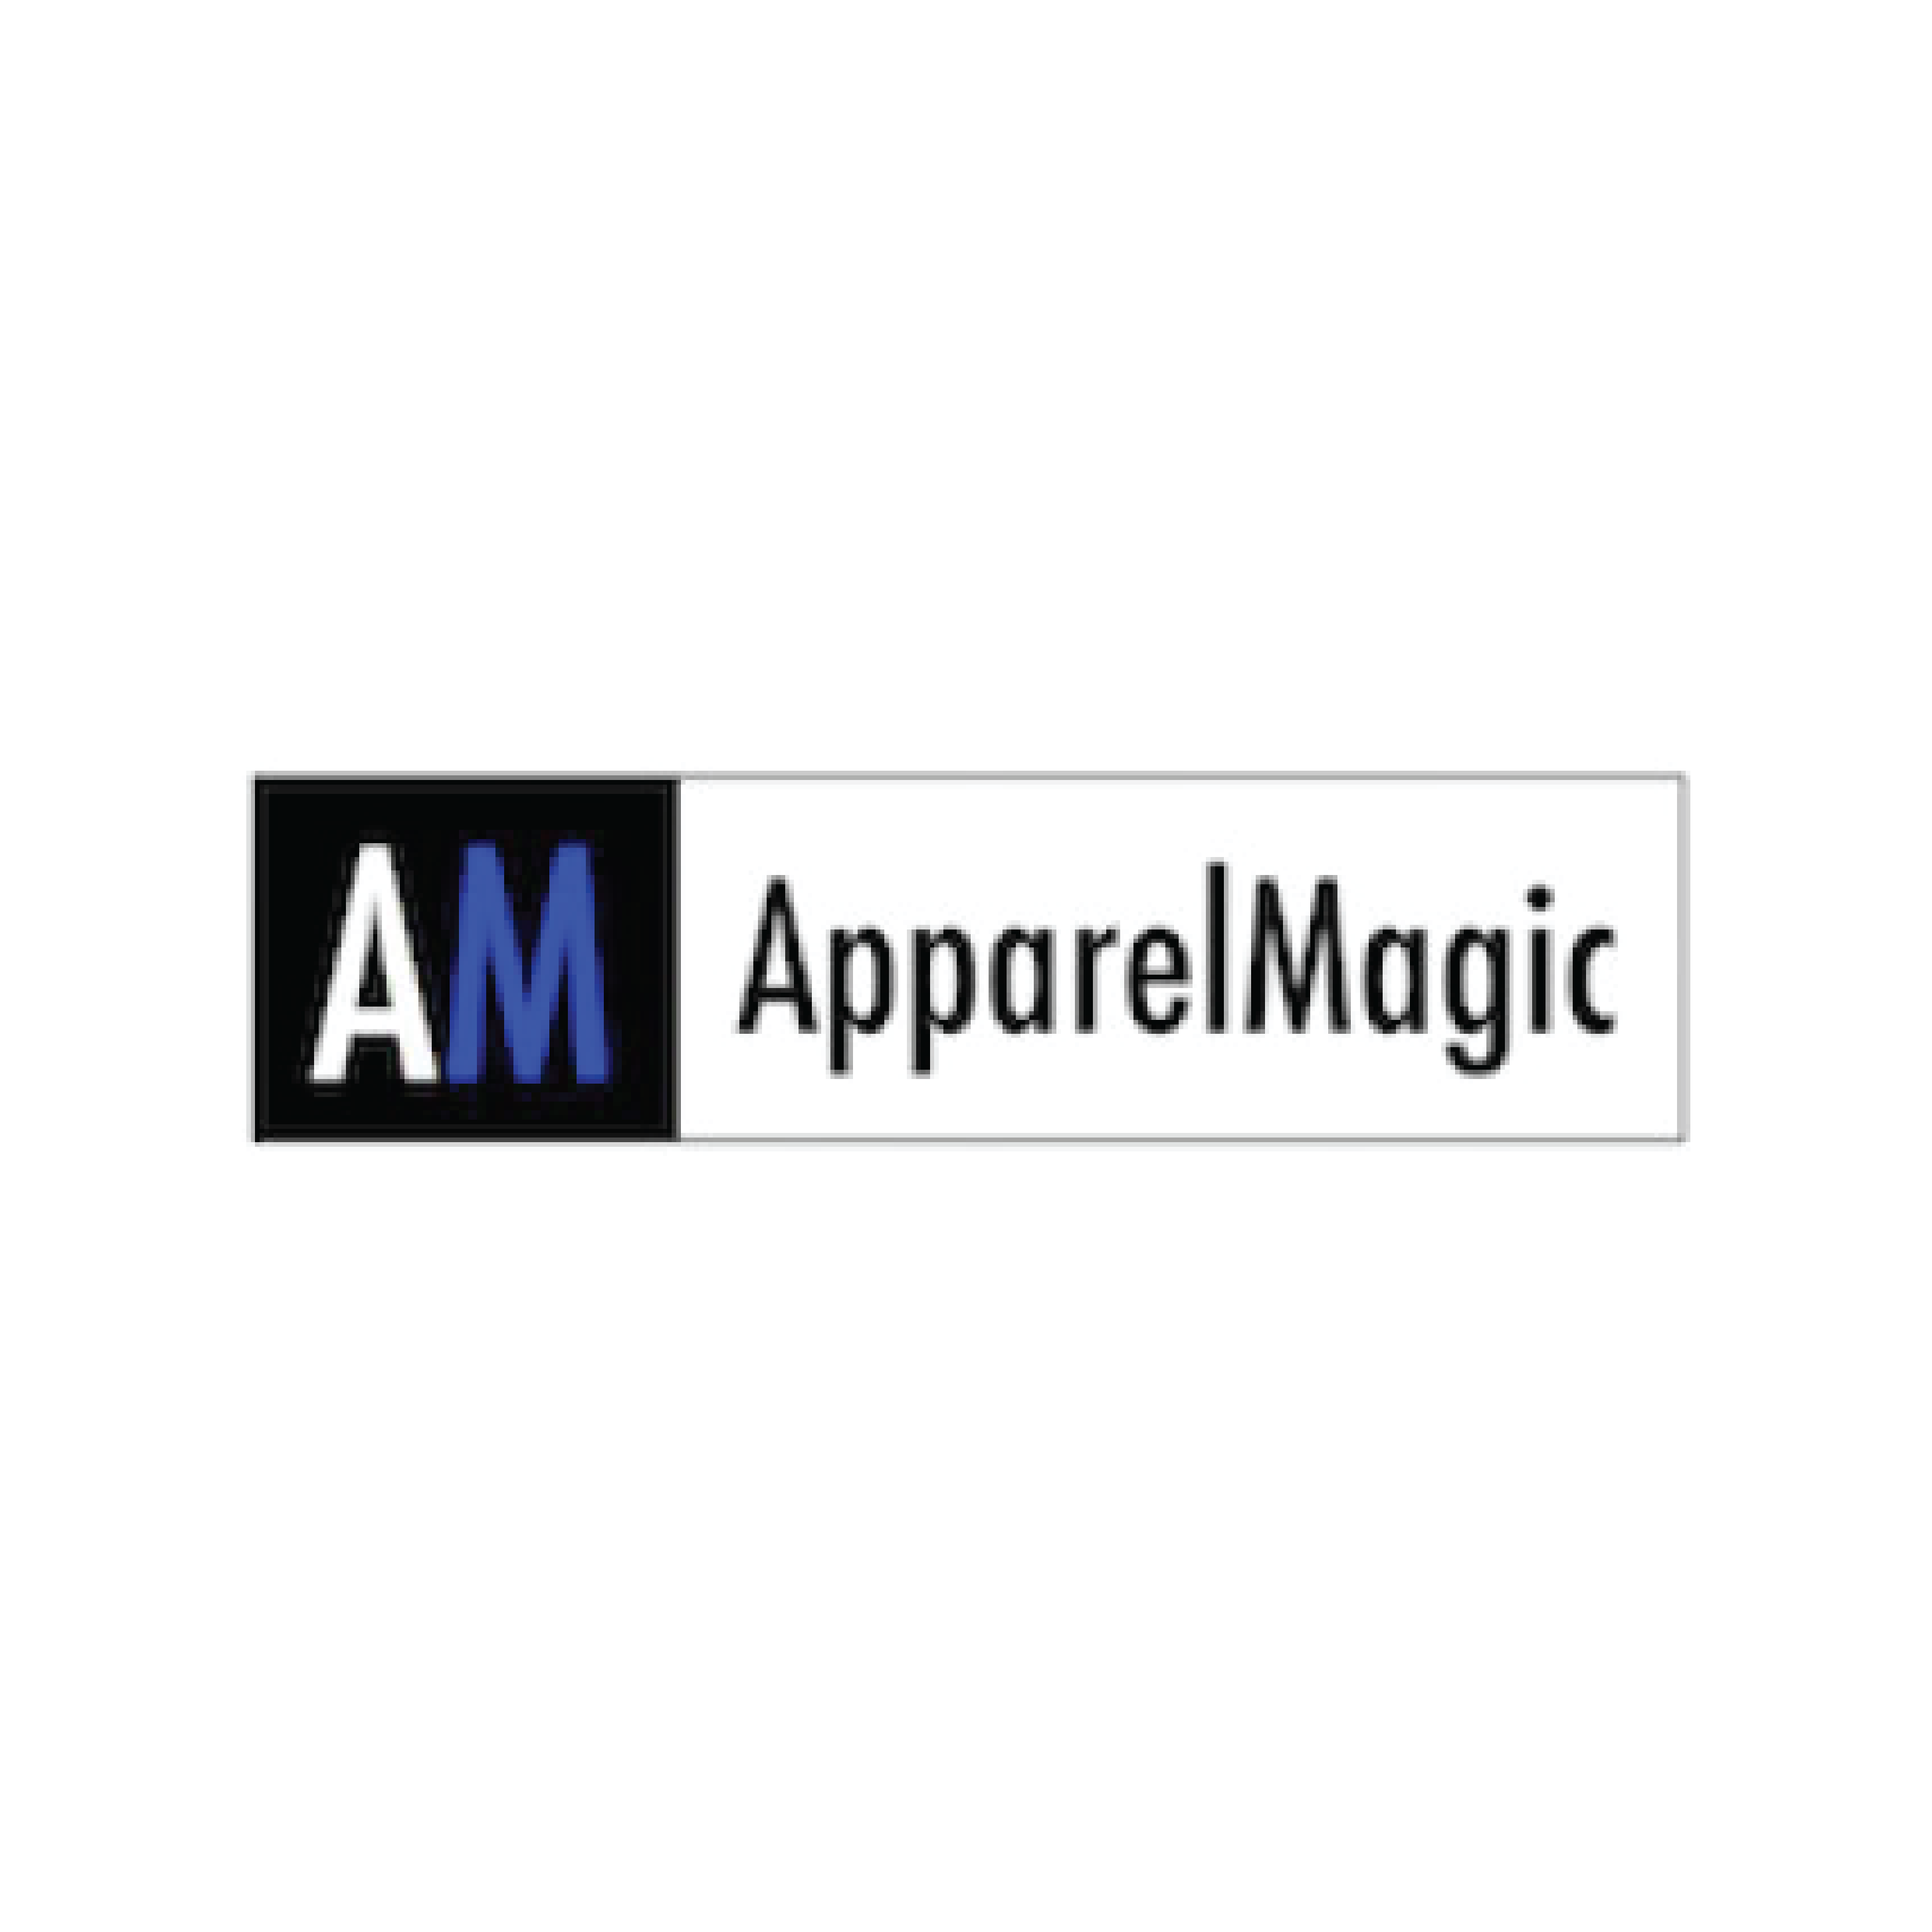 Apparel Magic Shipedge Integration